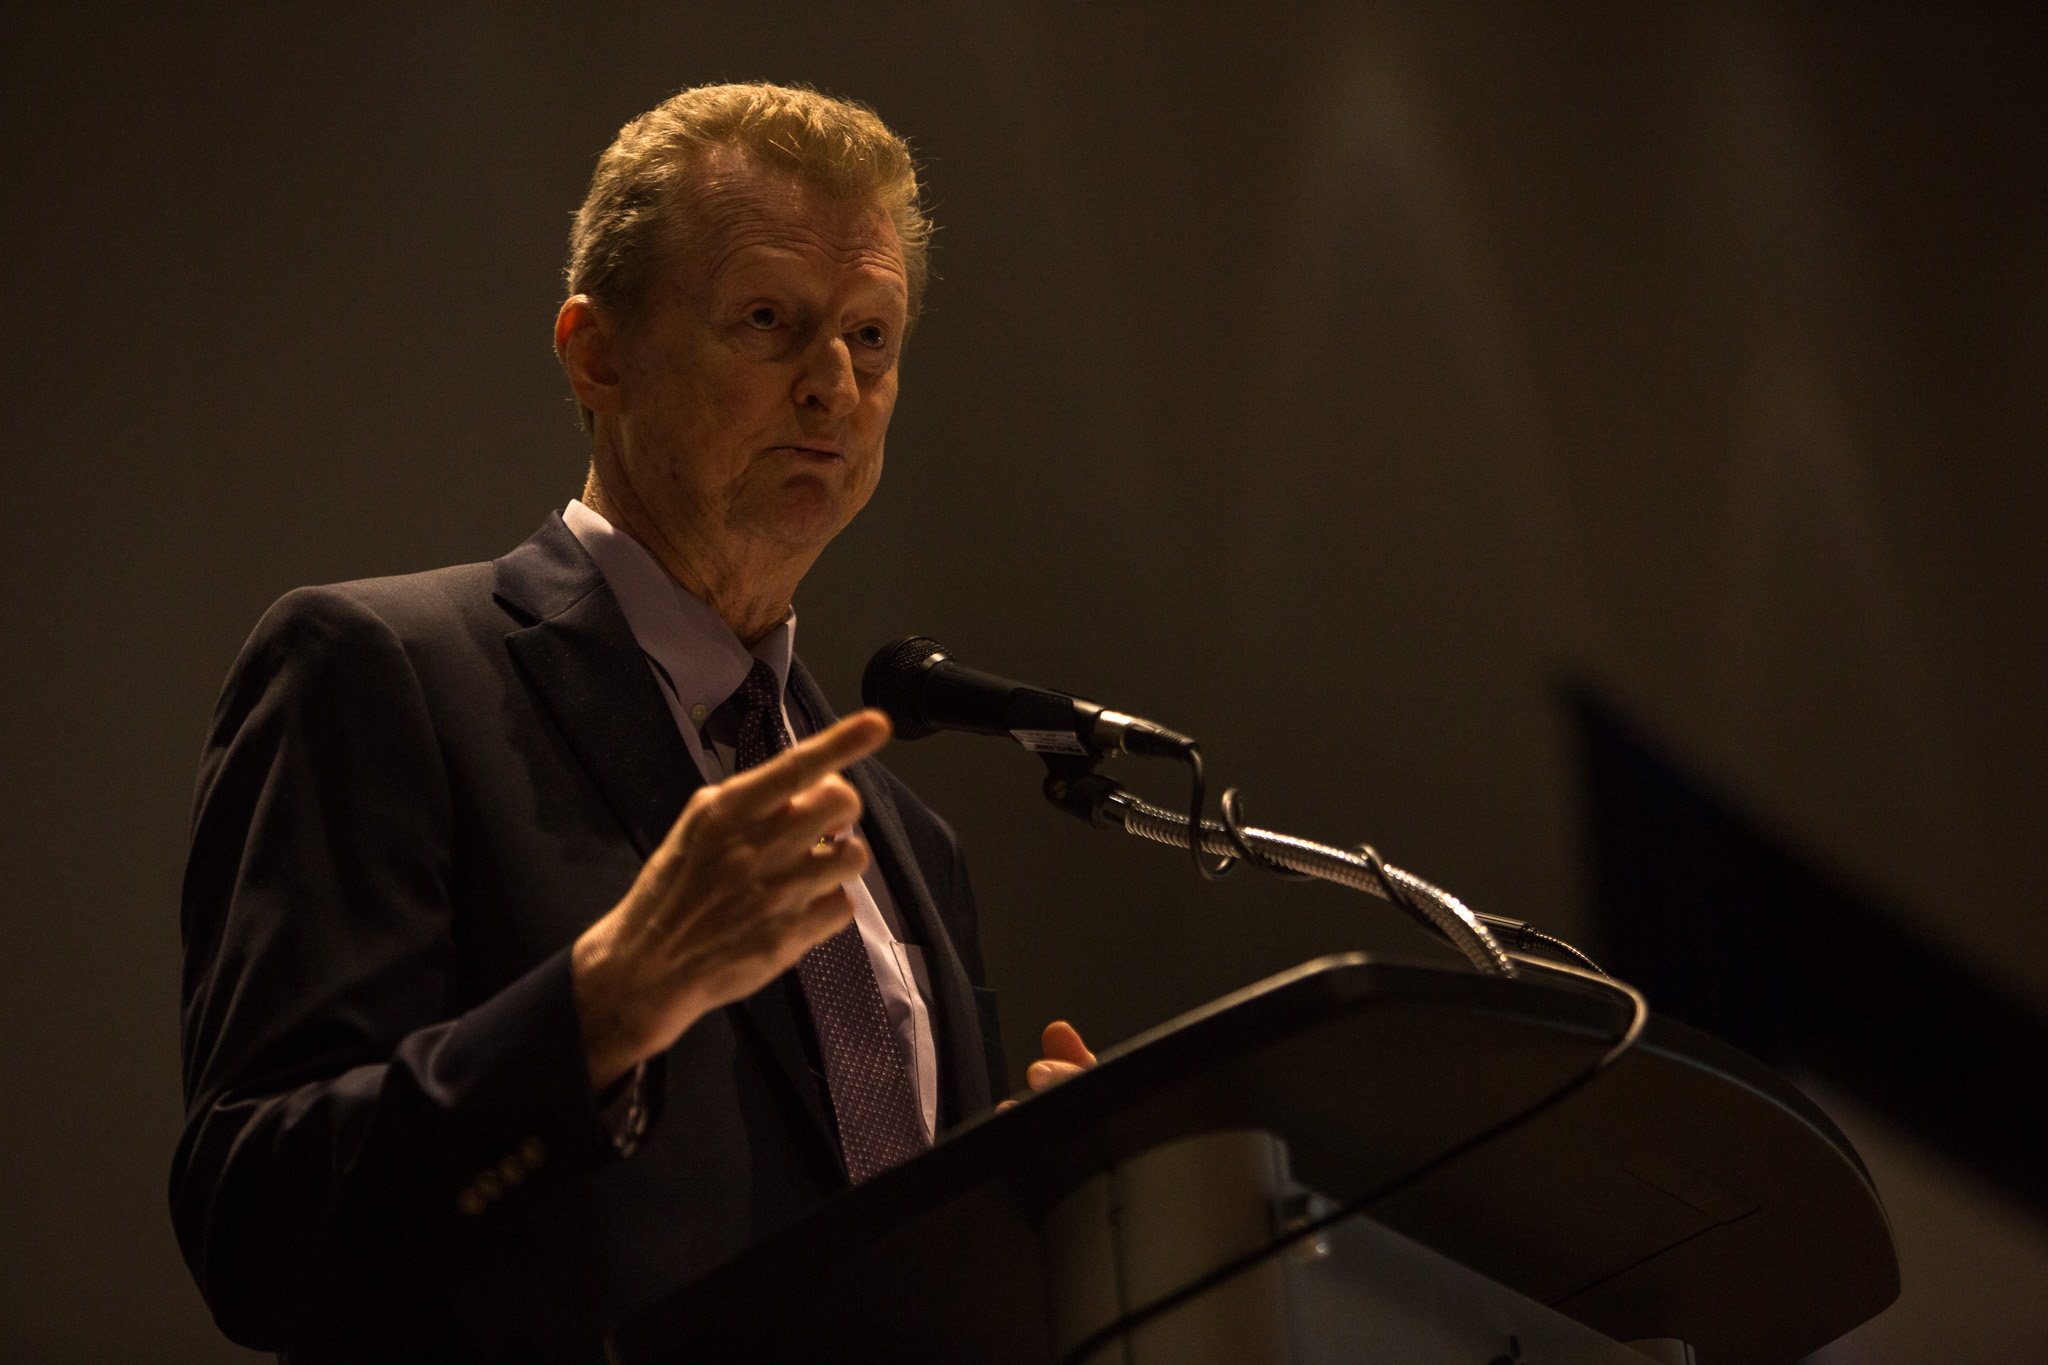 President of SecureLogix Corporation Lee Sutterfield gives his acceptance speech. Photo by Scott Ball.